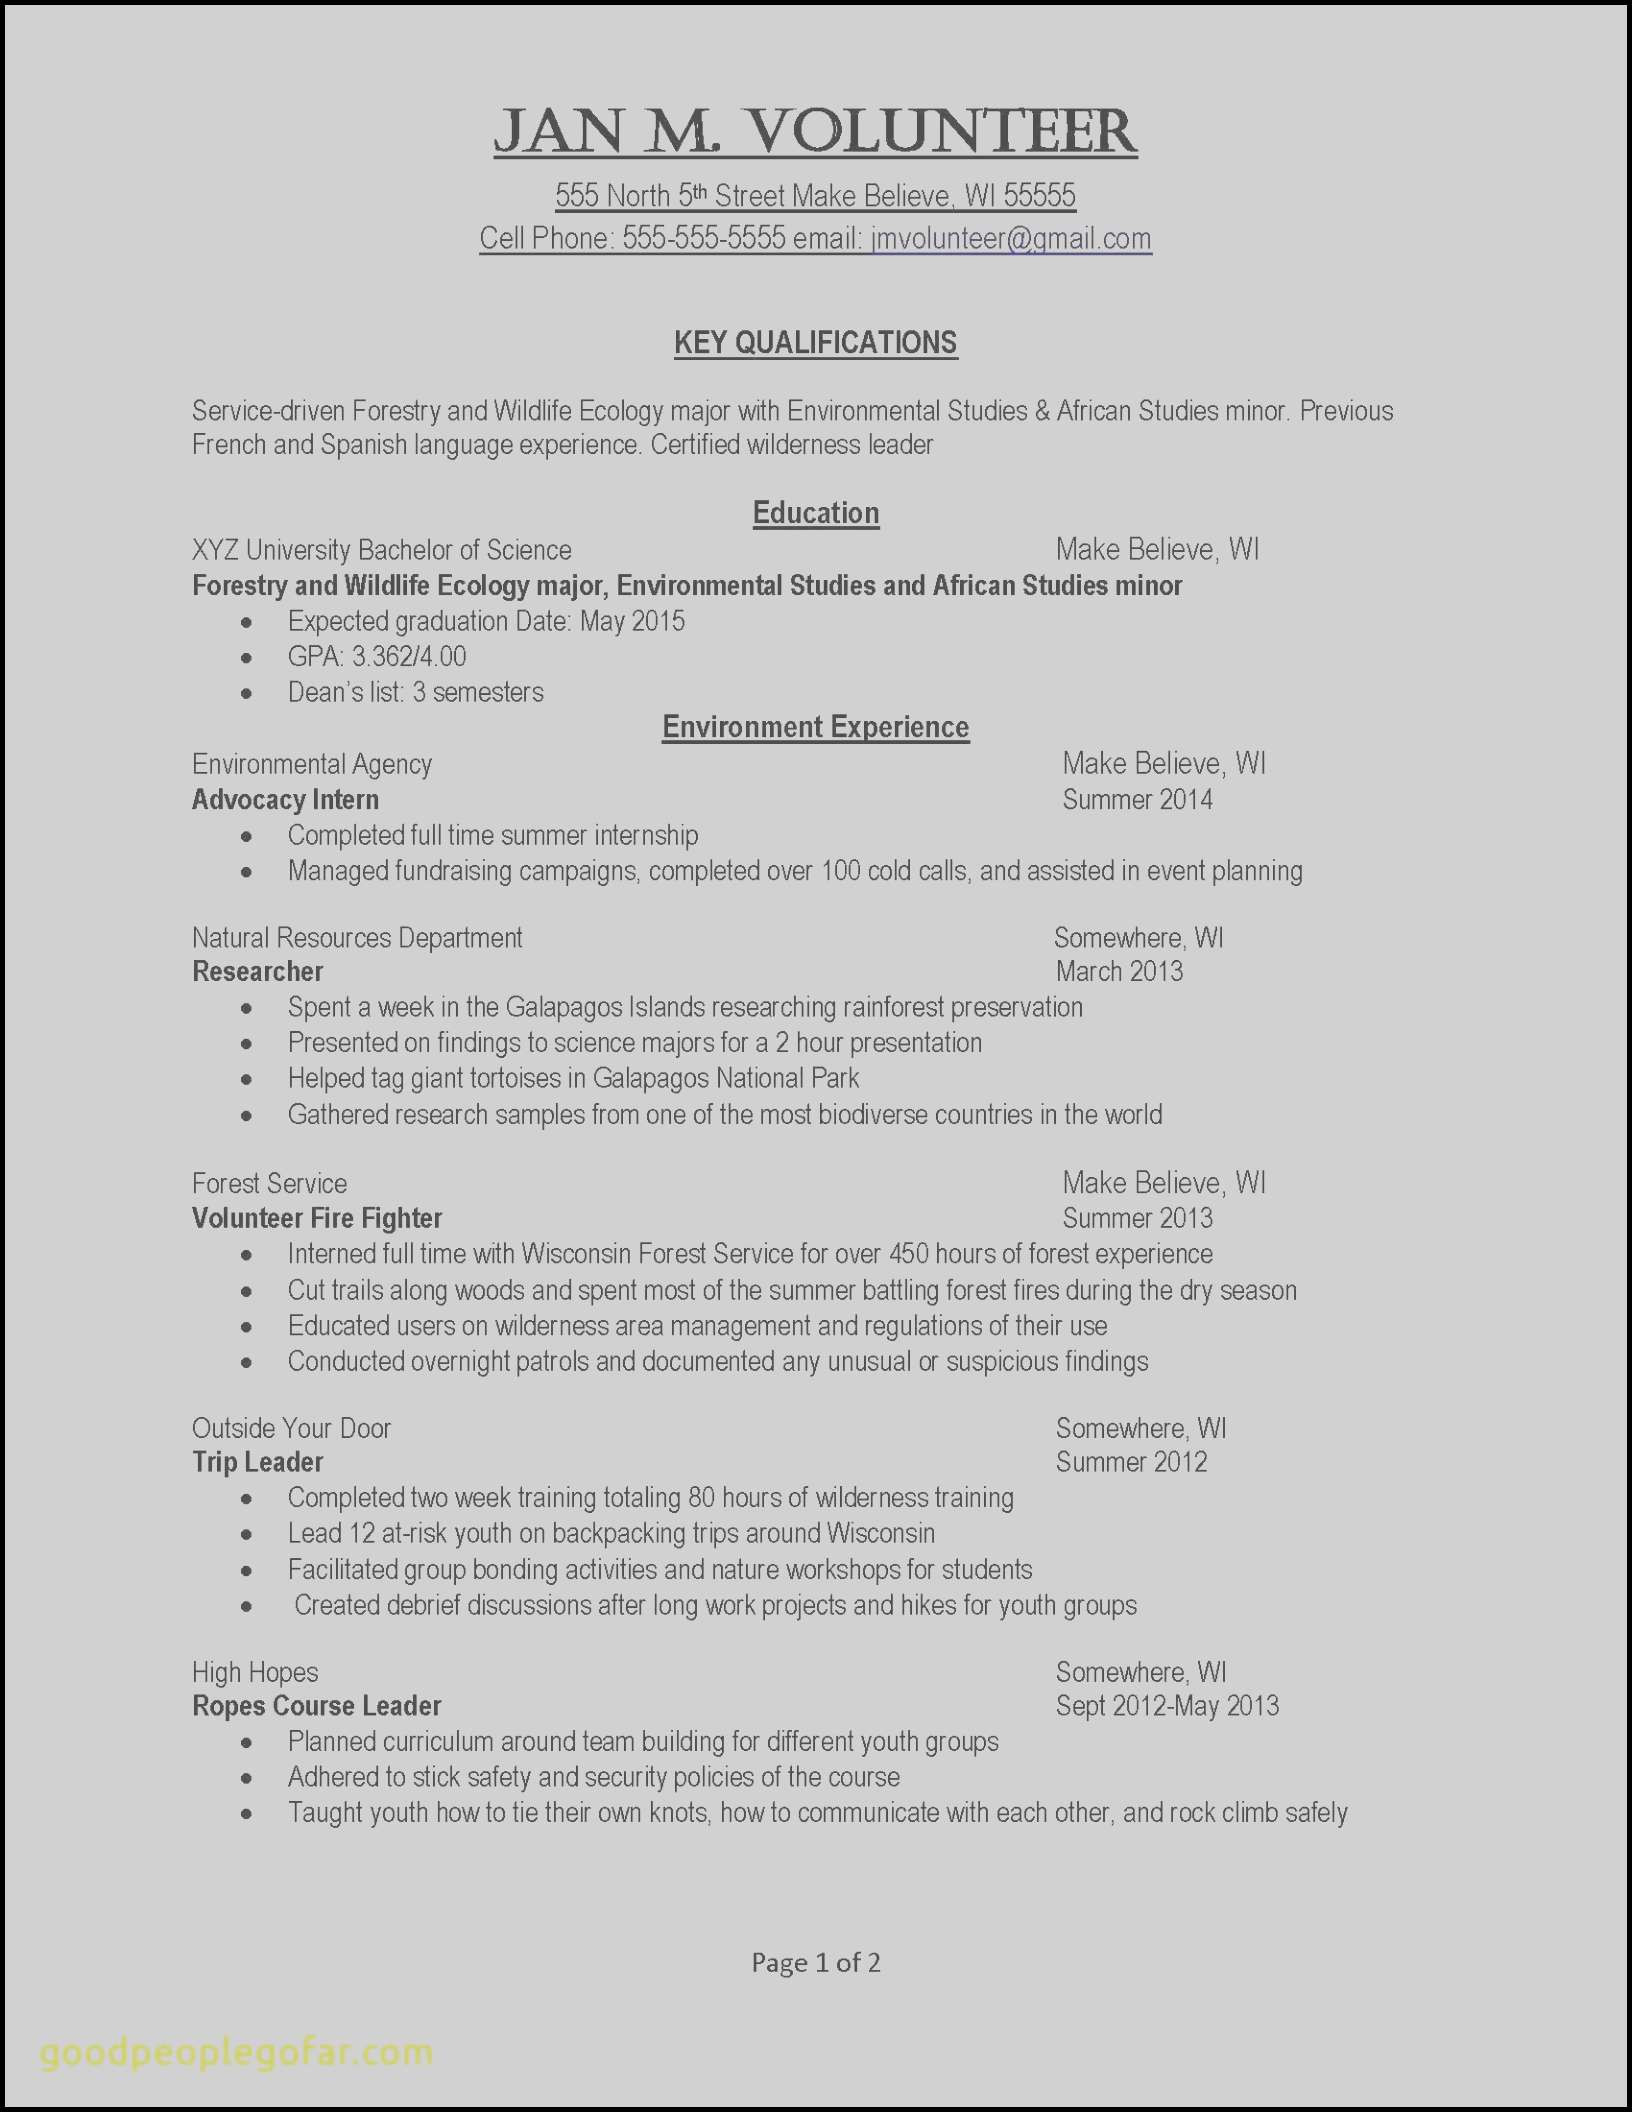 Sales Rep Resume - Resume Examples for Warehouse Position Recent Example Job Resume